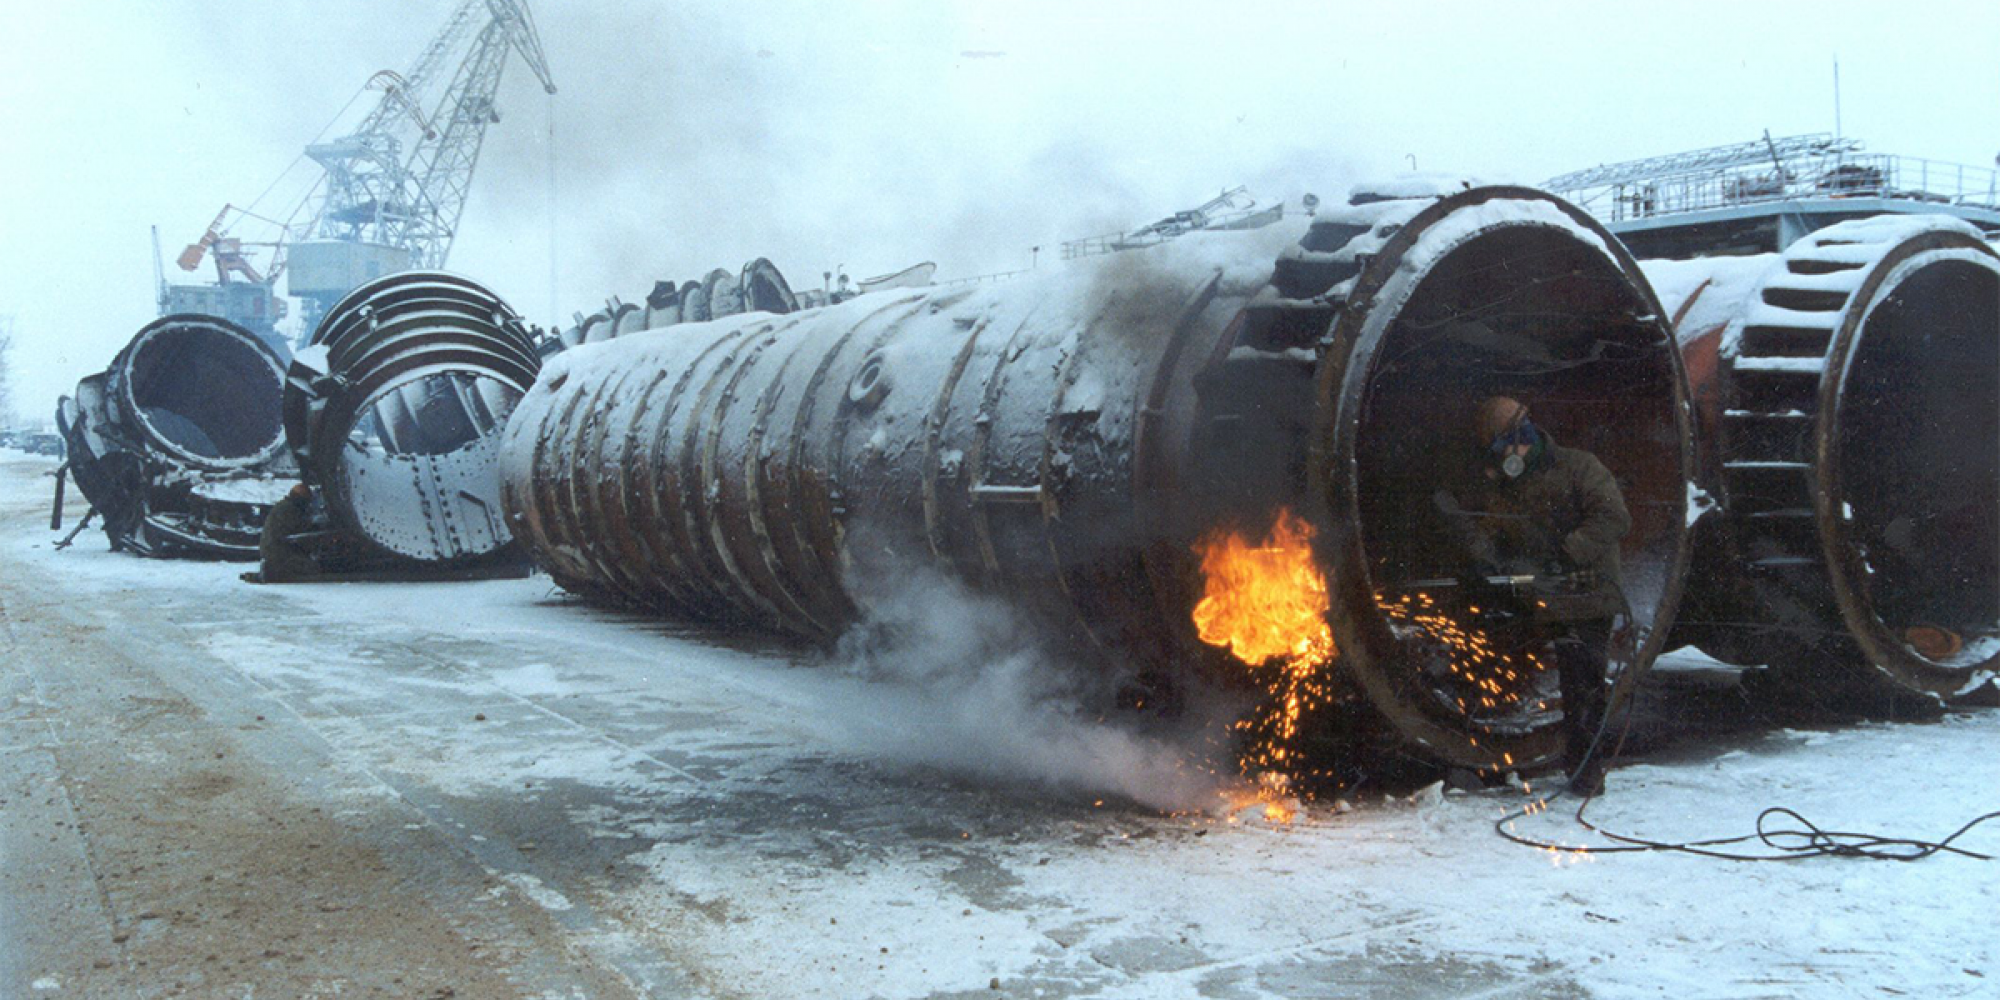 A man stands inside a ballistic missile tube, cutting into the shell with a metal torch. Other old tubes can be seen in the background of the scrapyard.